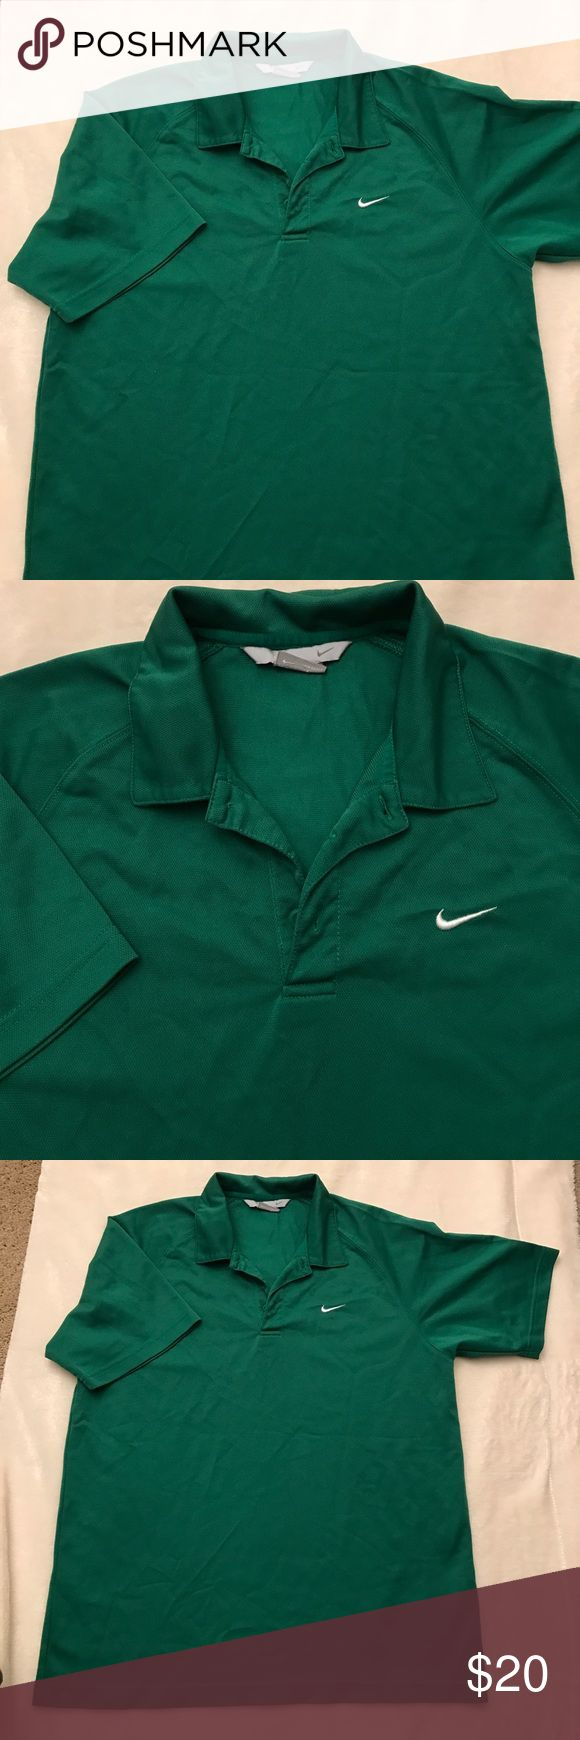 Nike polo shirt🏌🏼⛳️ Worn once size large runs a bit tight. Perfect polo for sports, golfing. Nike Shirts Polos